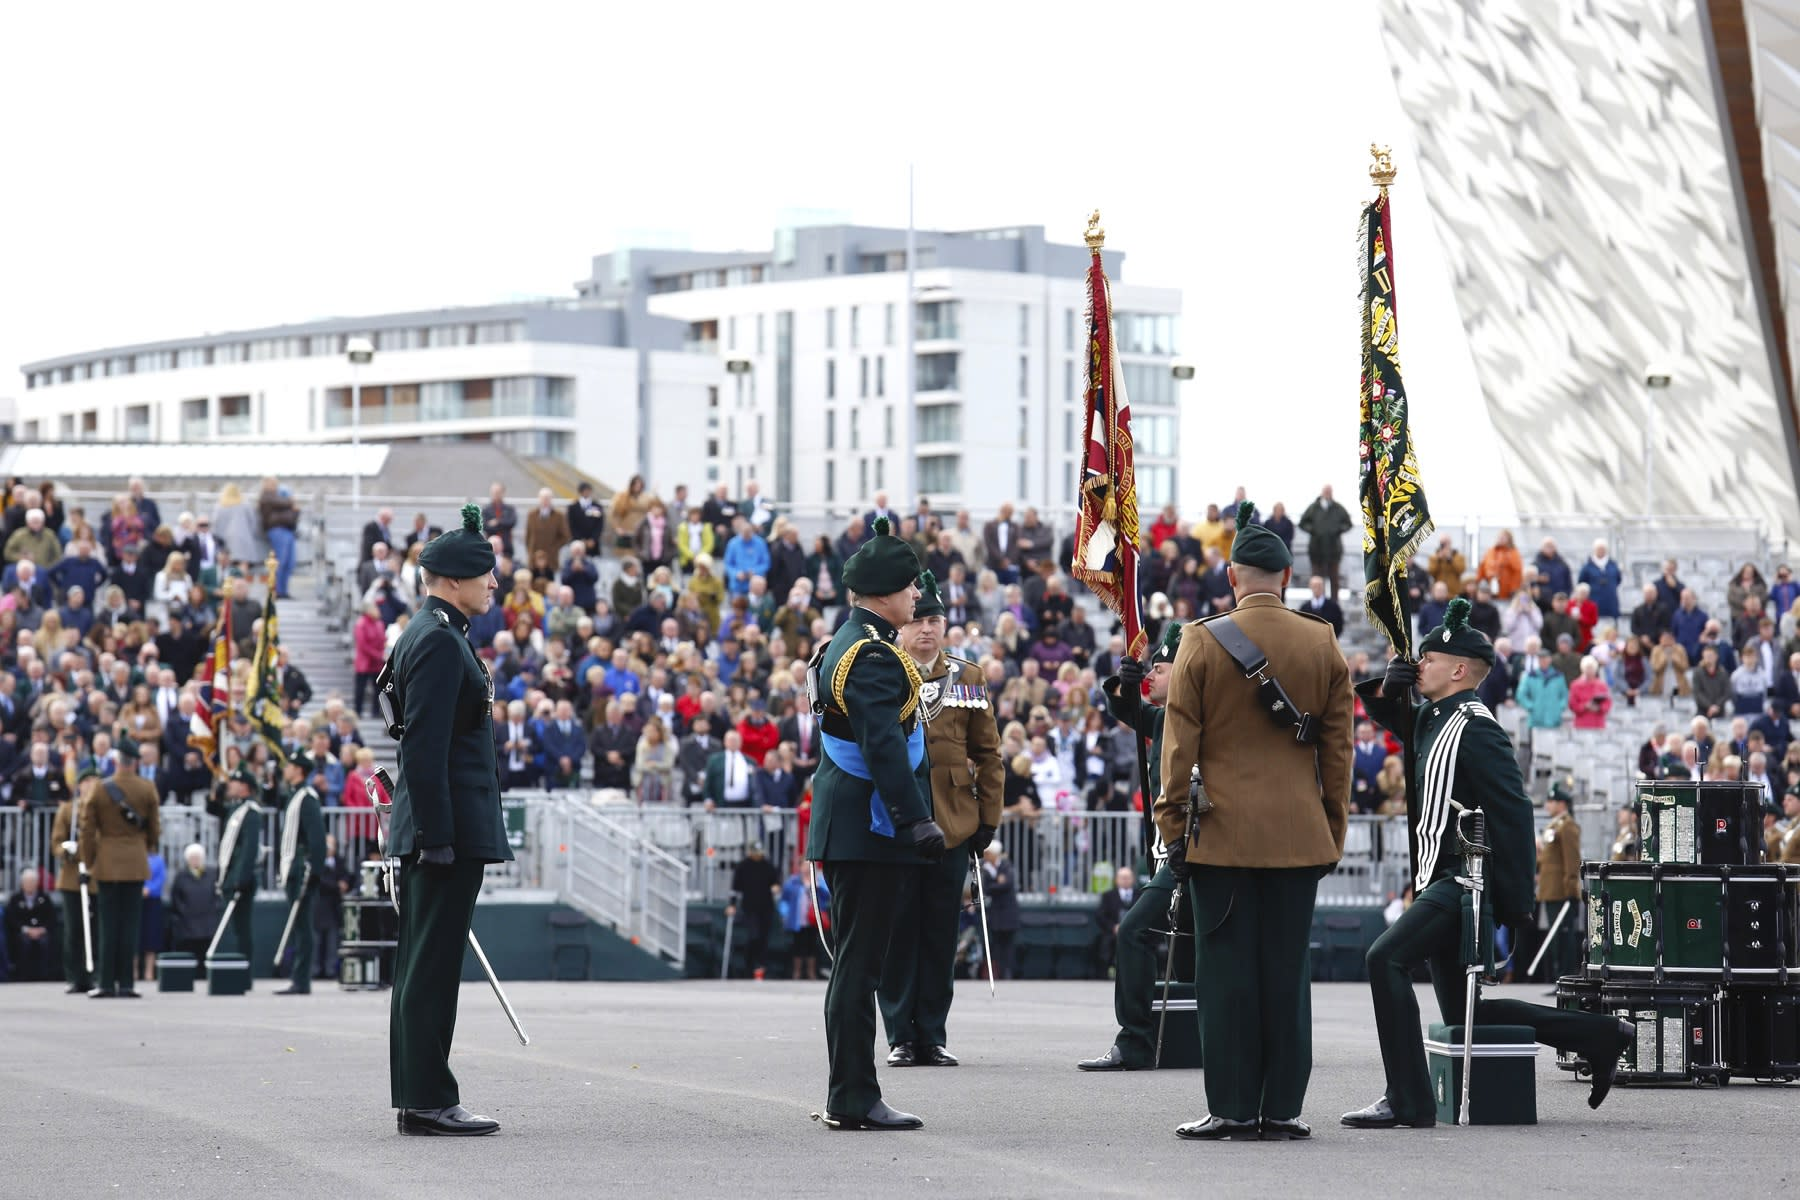 22 SEPTEMBER 2018 TITANIC SLIPWAYS, BELFAST Royal Irish Regiment, Presentation of New Colours 2018 Prince Andrew presents the newly consecrated regimental colours photo: Colm Murphy